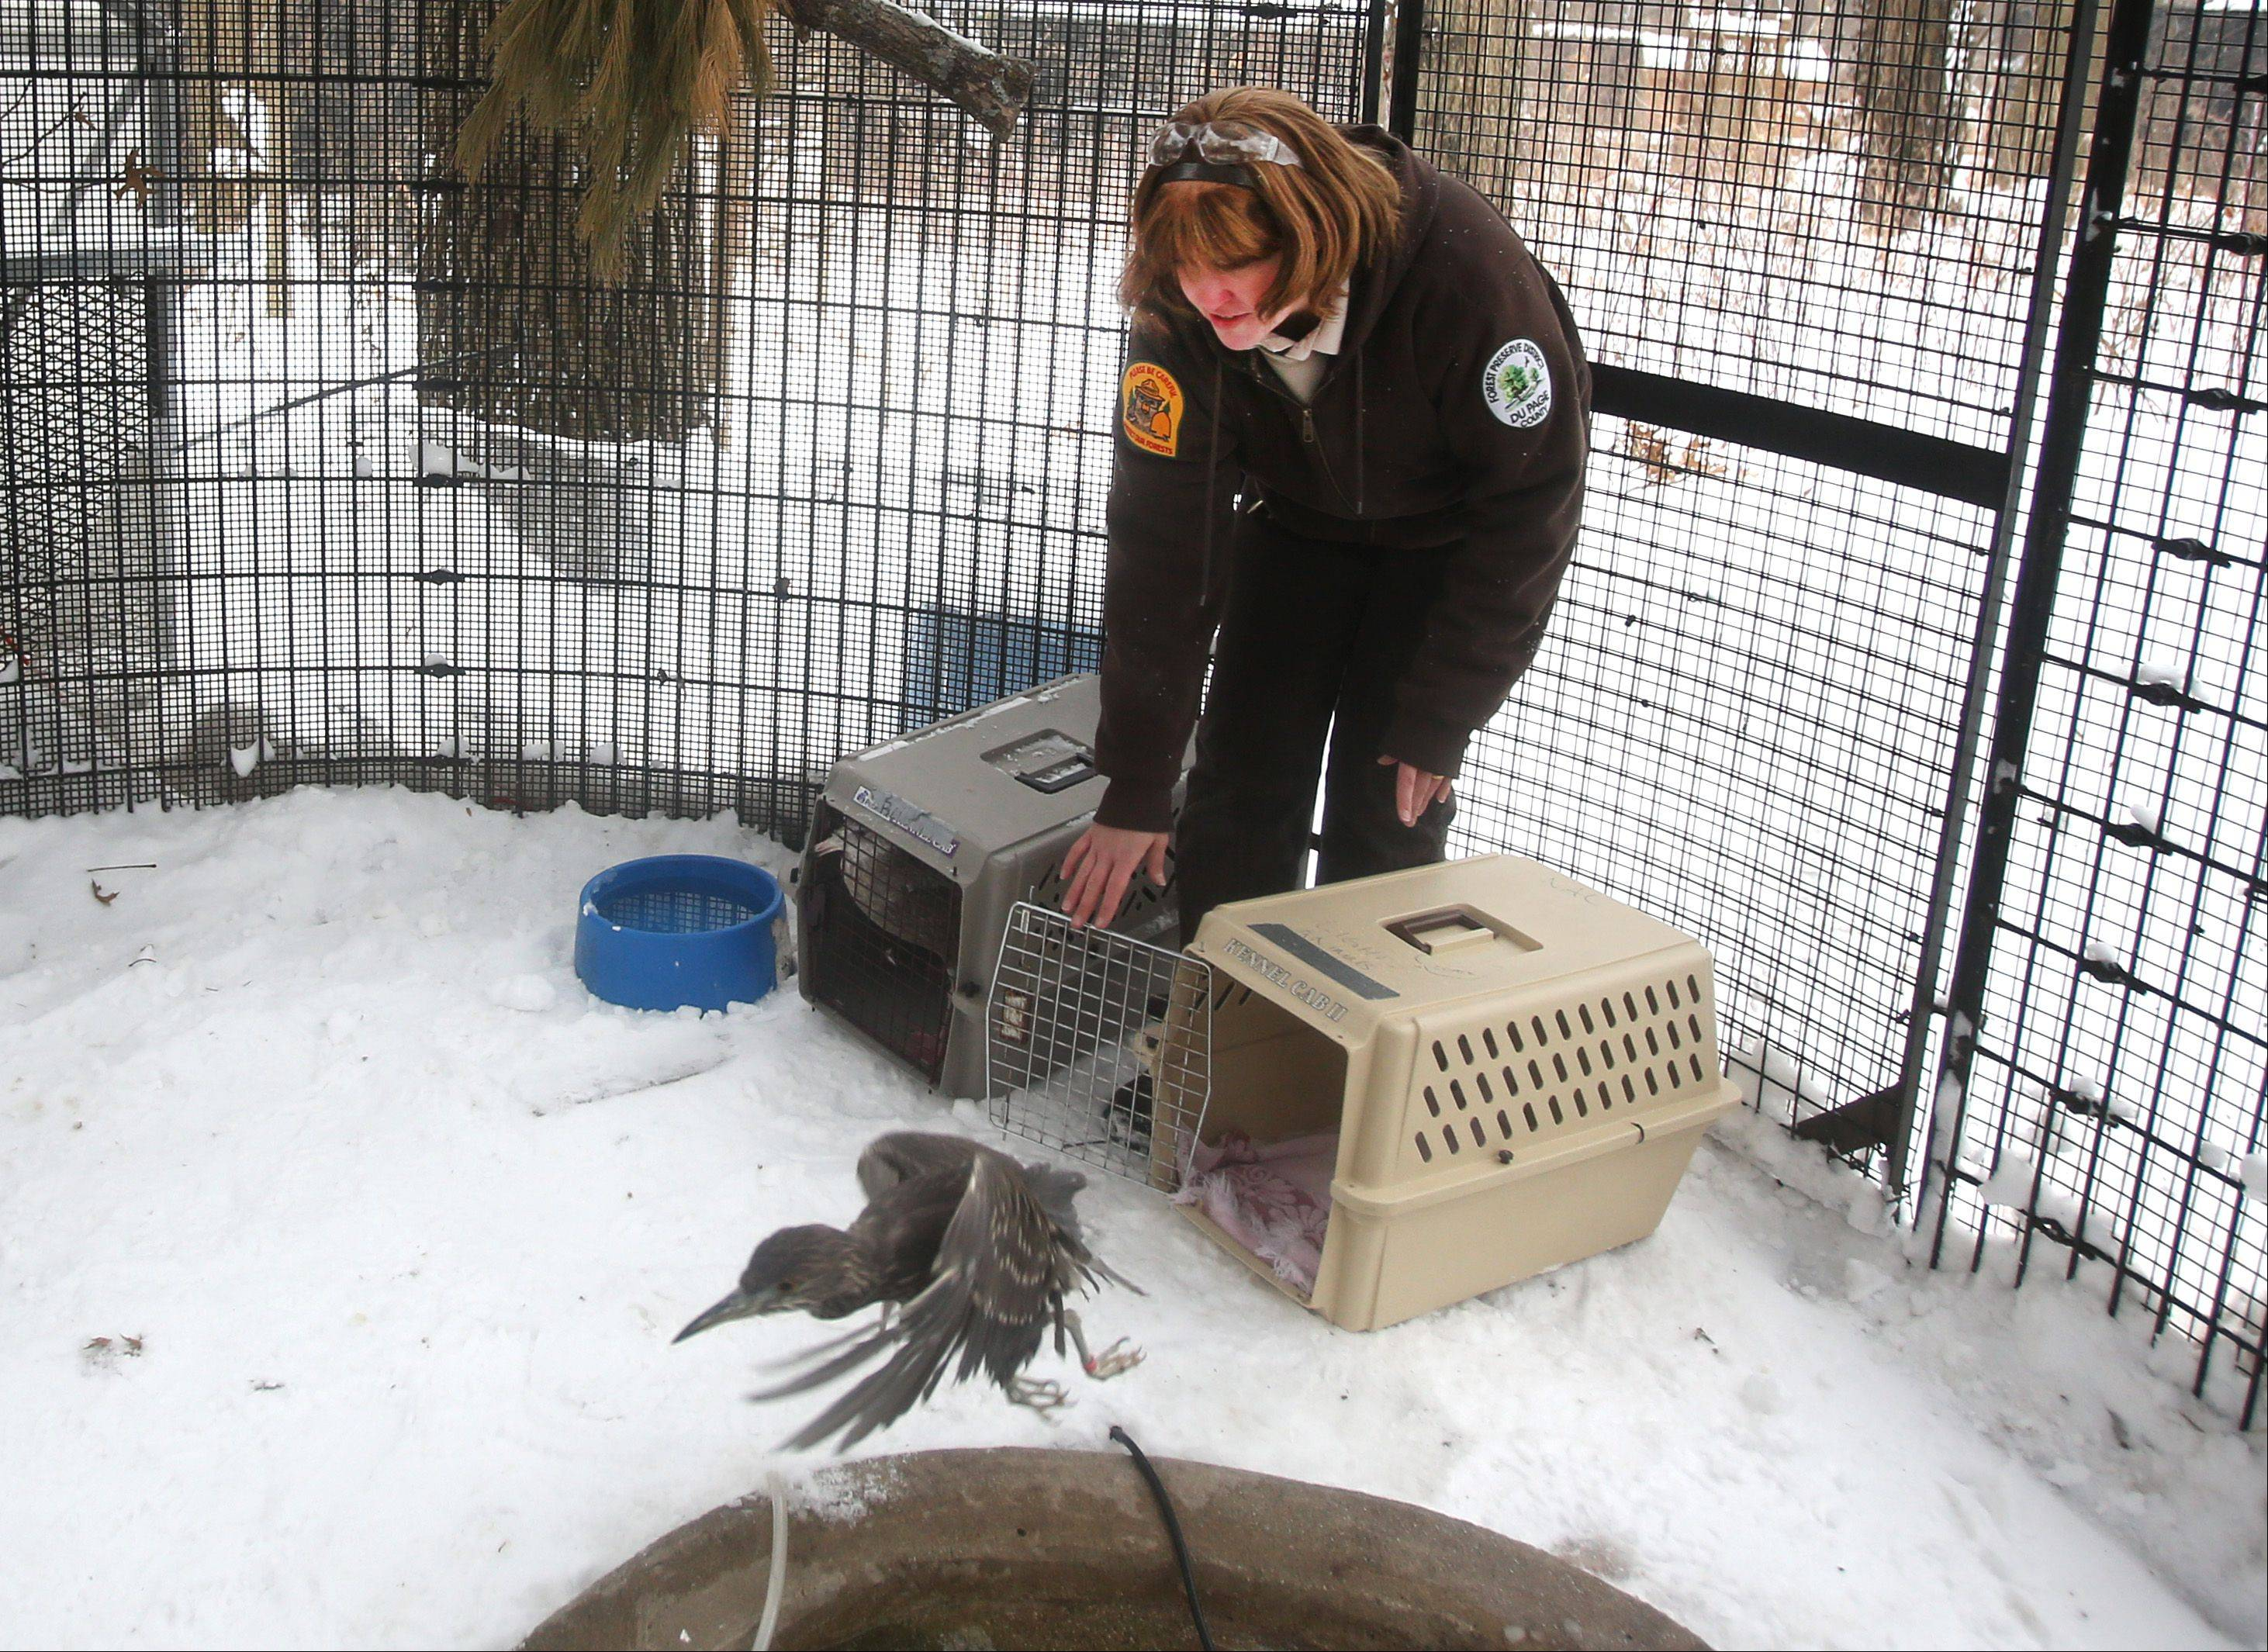 Rose Augustine, wildlife specialist at the Willowbrook Wildlife Center in Glen Ellyn, releases a black-crowned night heron. Staff members returned several birds to their enclosures Thursday after bringing them inside to protect them from this week's bitterly cold temperatures.